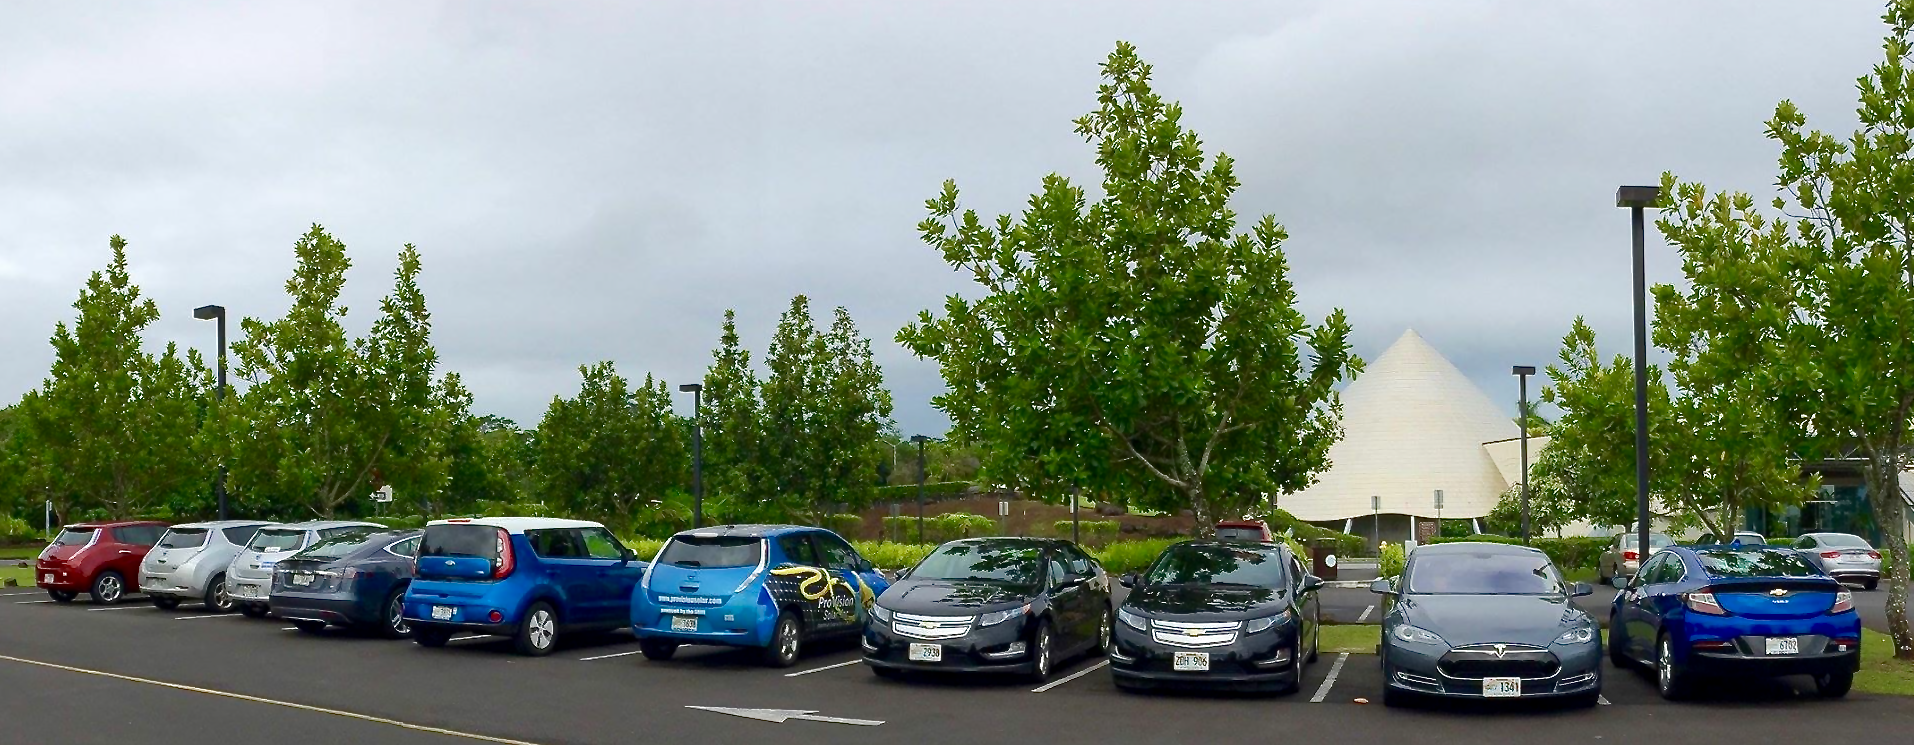 Our growing fleet of electric vehicles.... kicking gas!